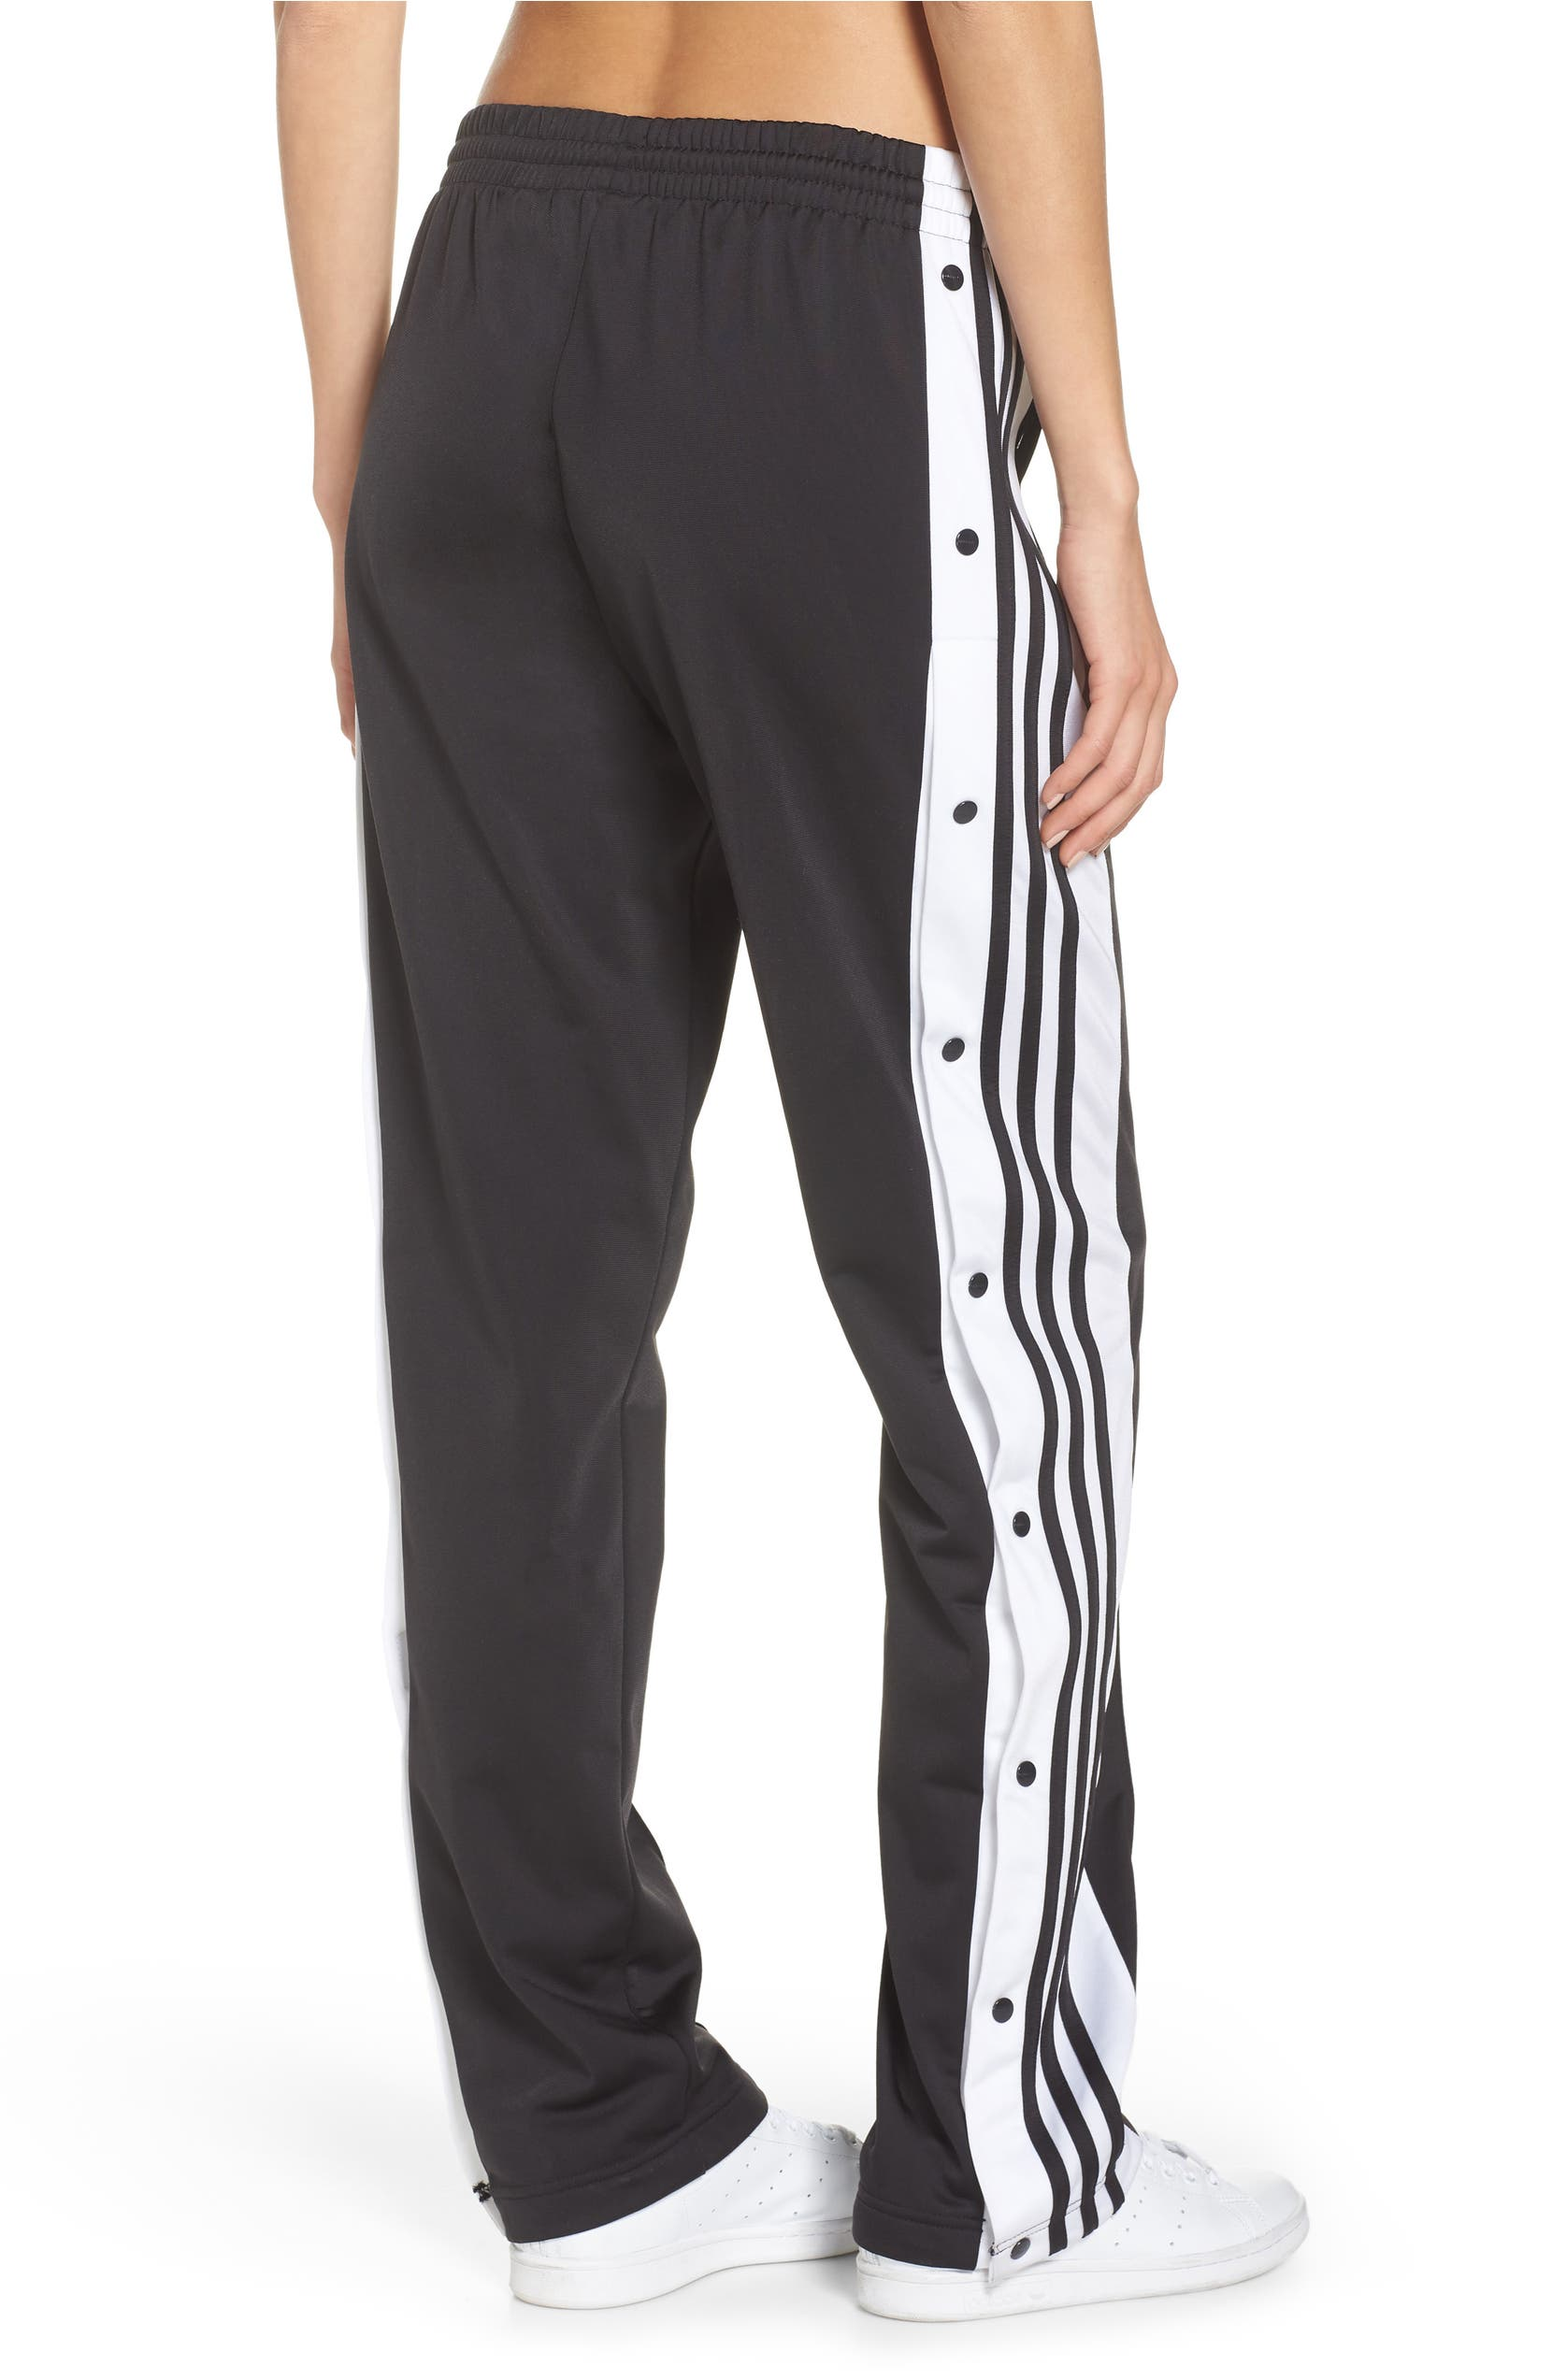 1bccba7175 Adibreak Tearaway Track Pants